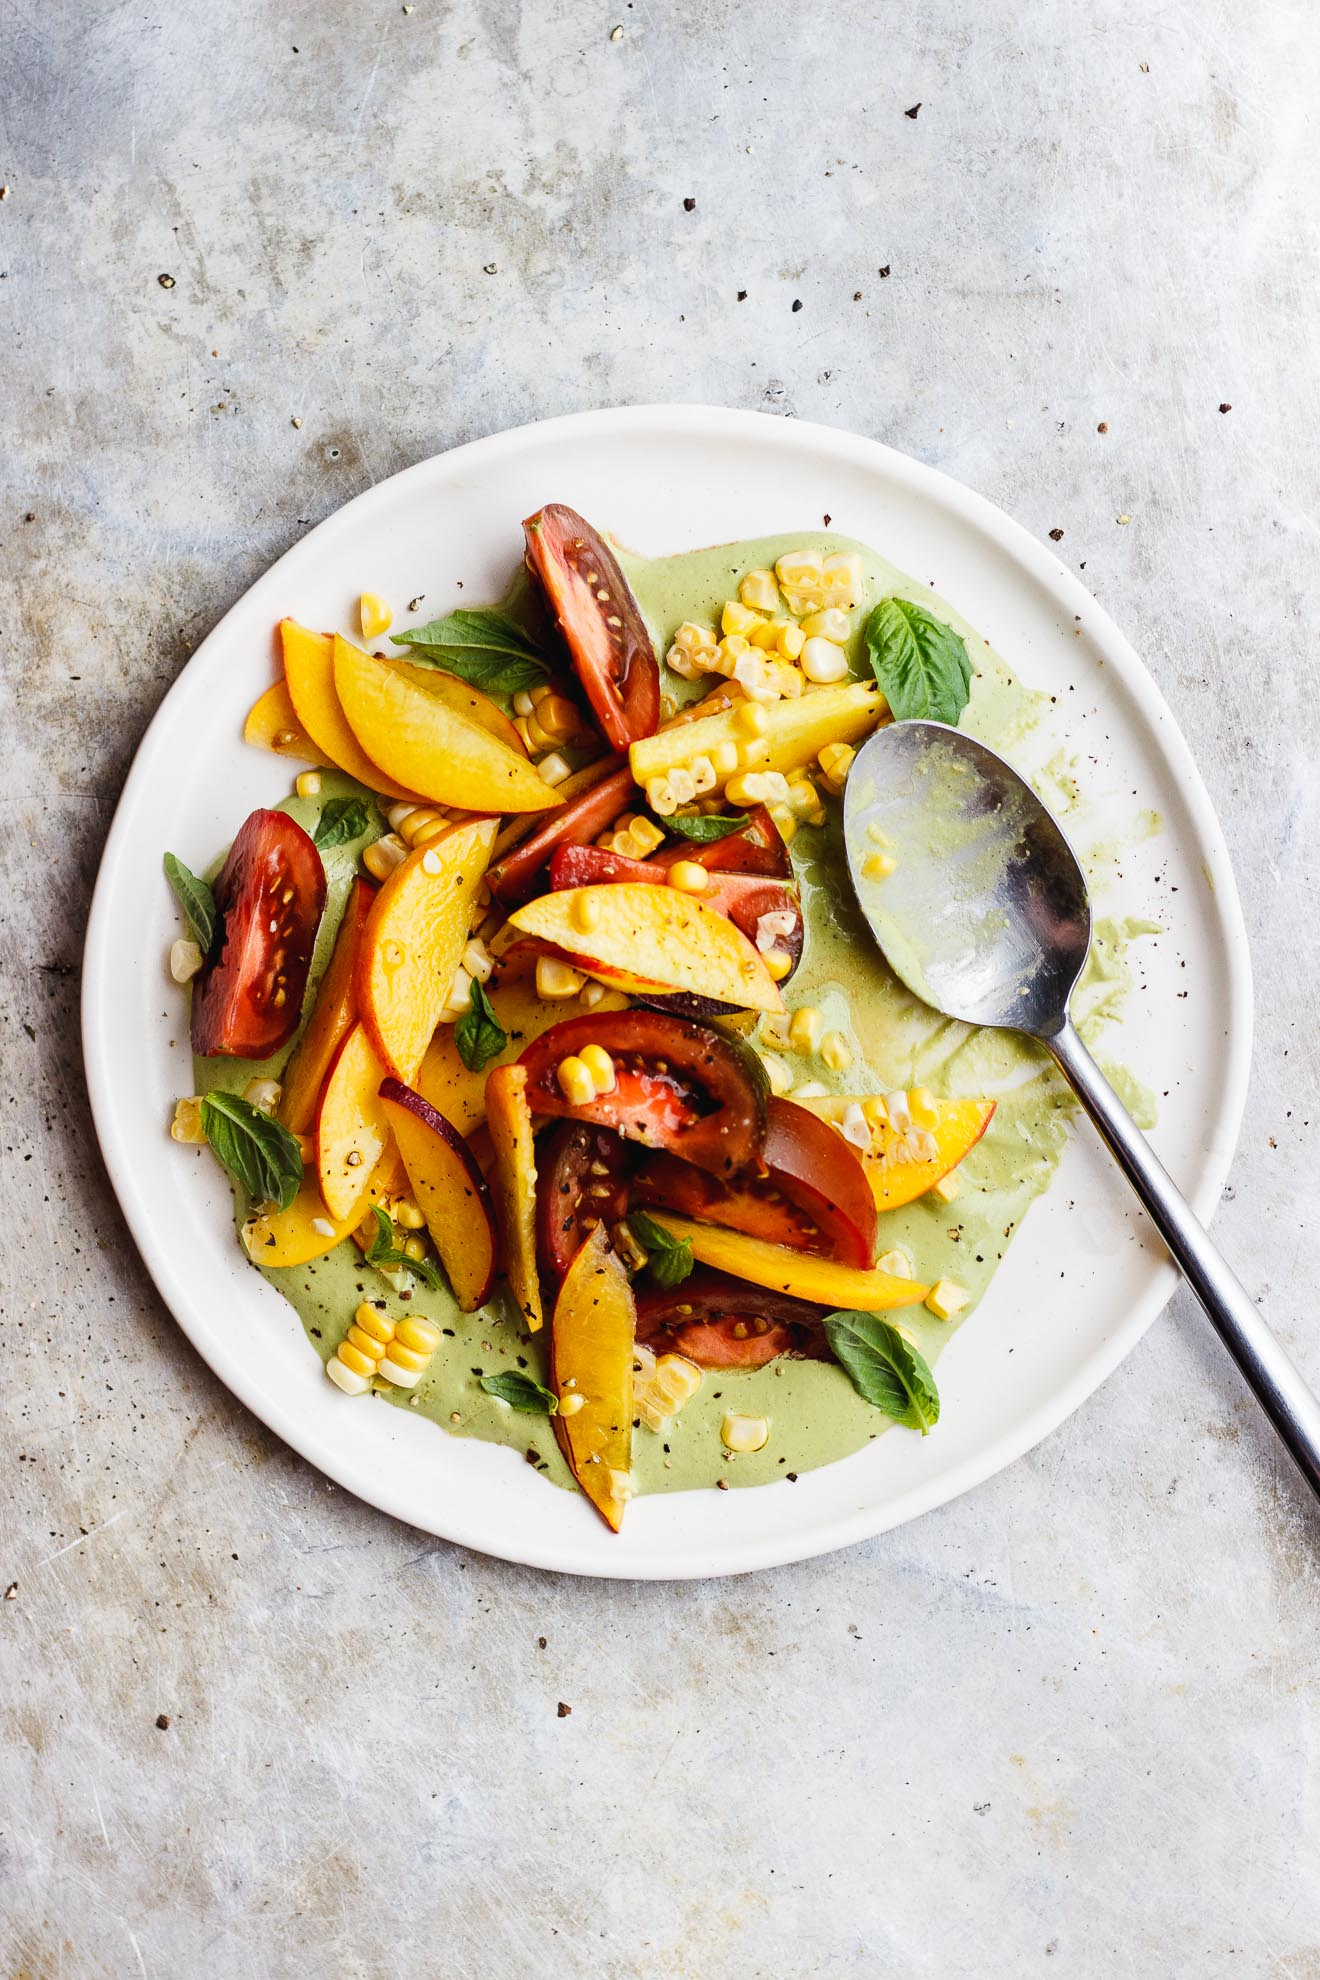 basil sauce and tomato peach salad